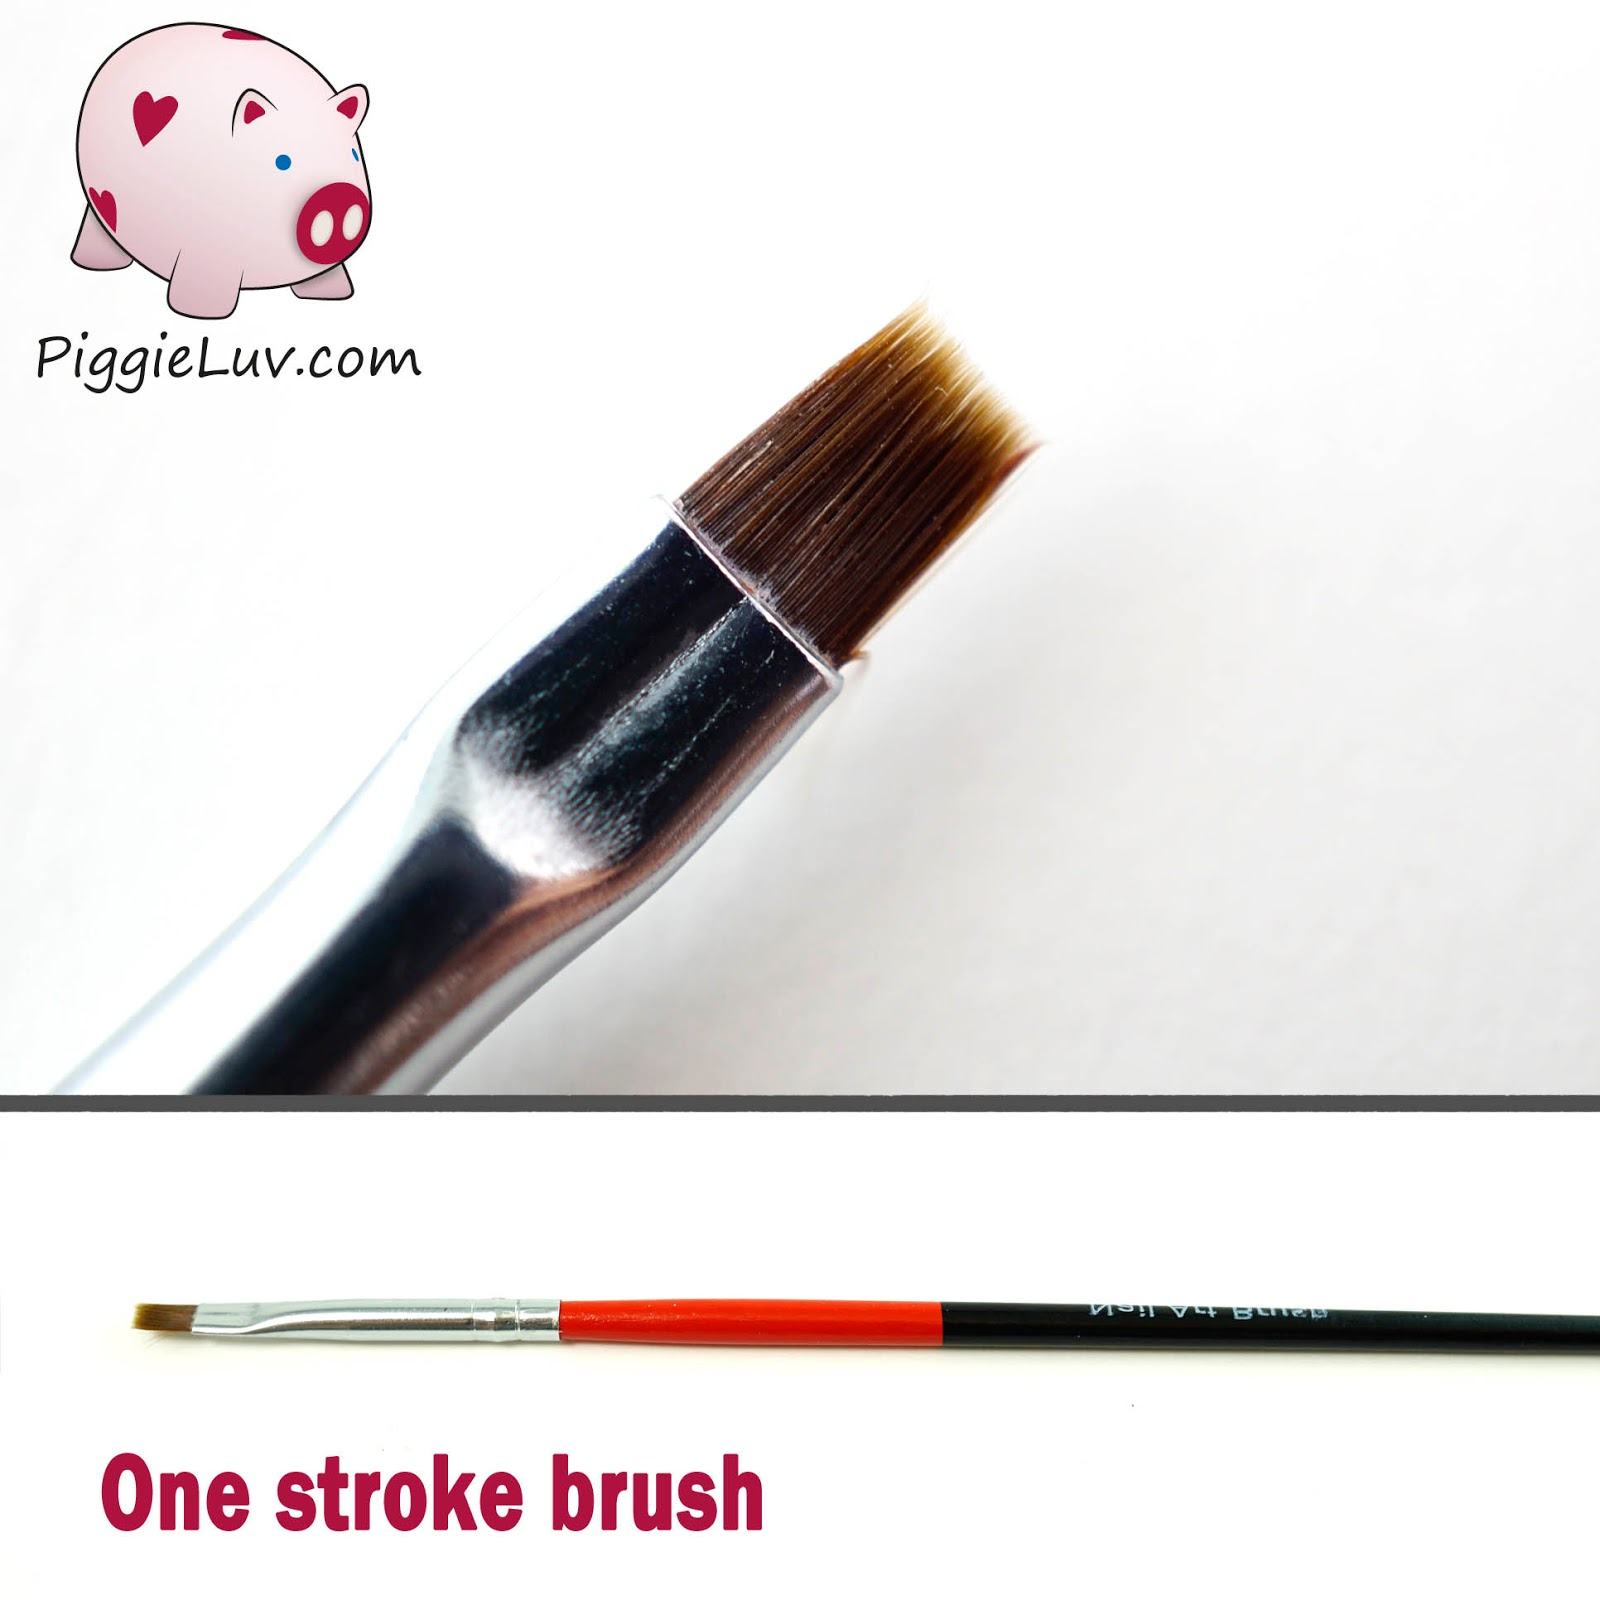 PiggieLuv: Behind The Nail Art - Brushes